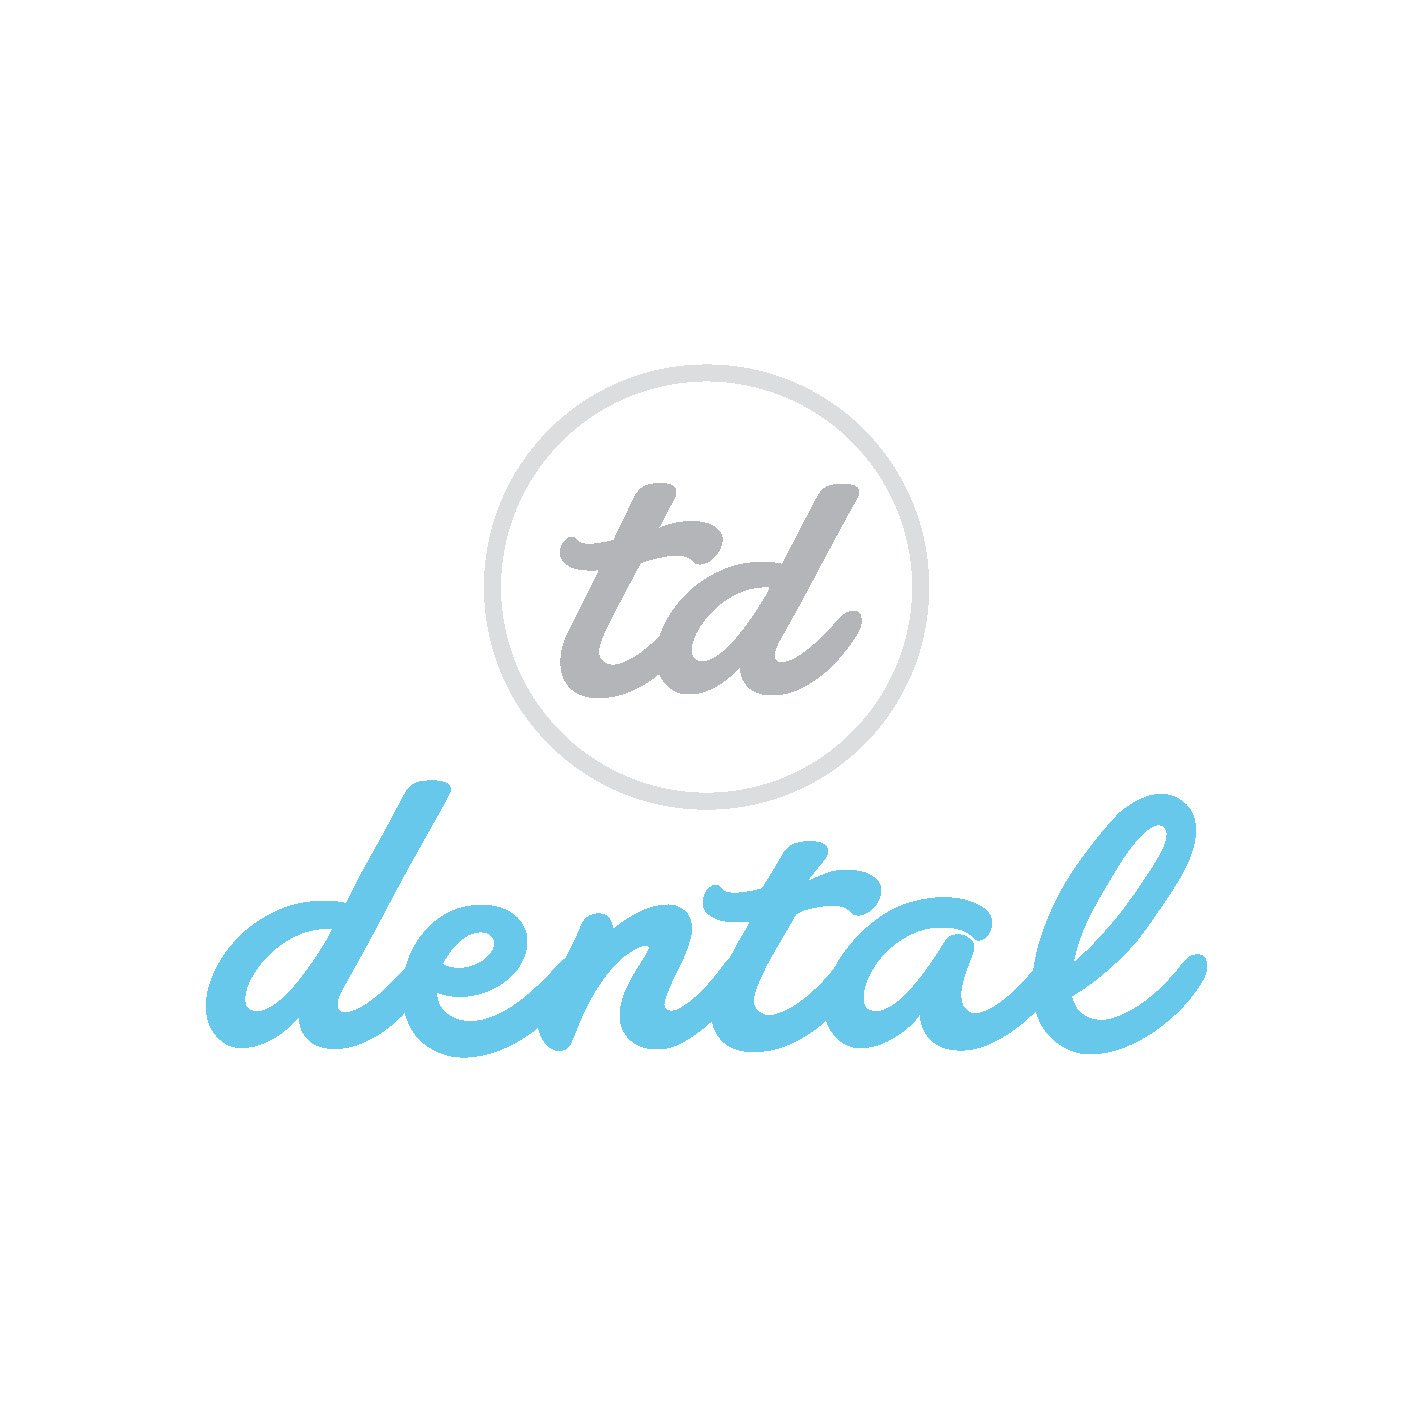 TD Dental - Dental Clinic Logo Design